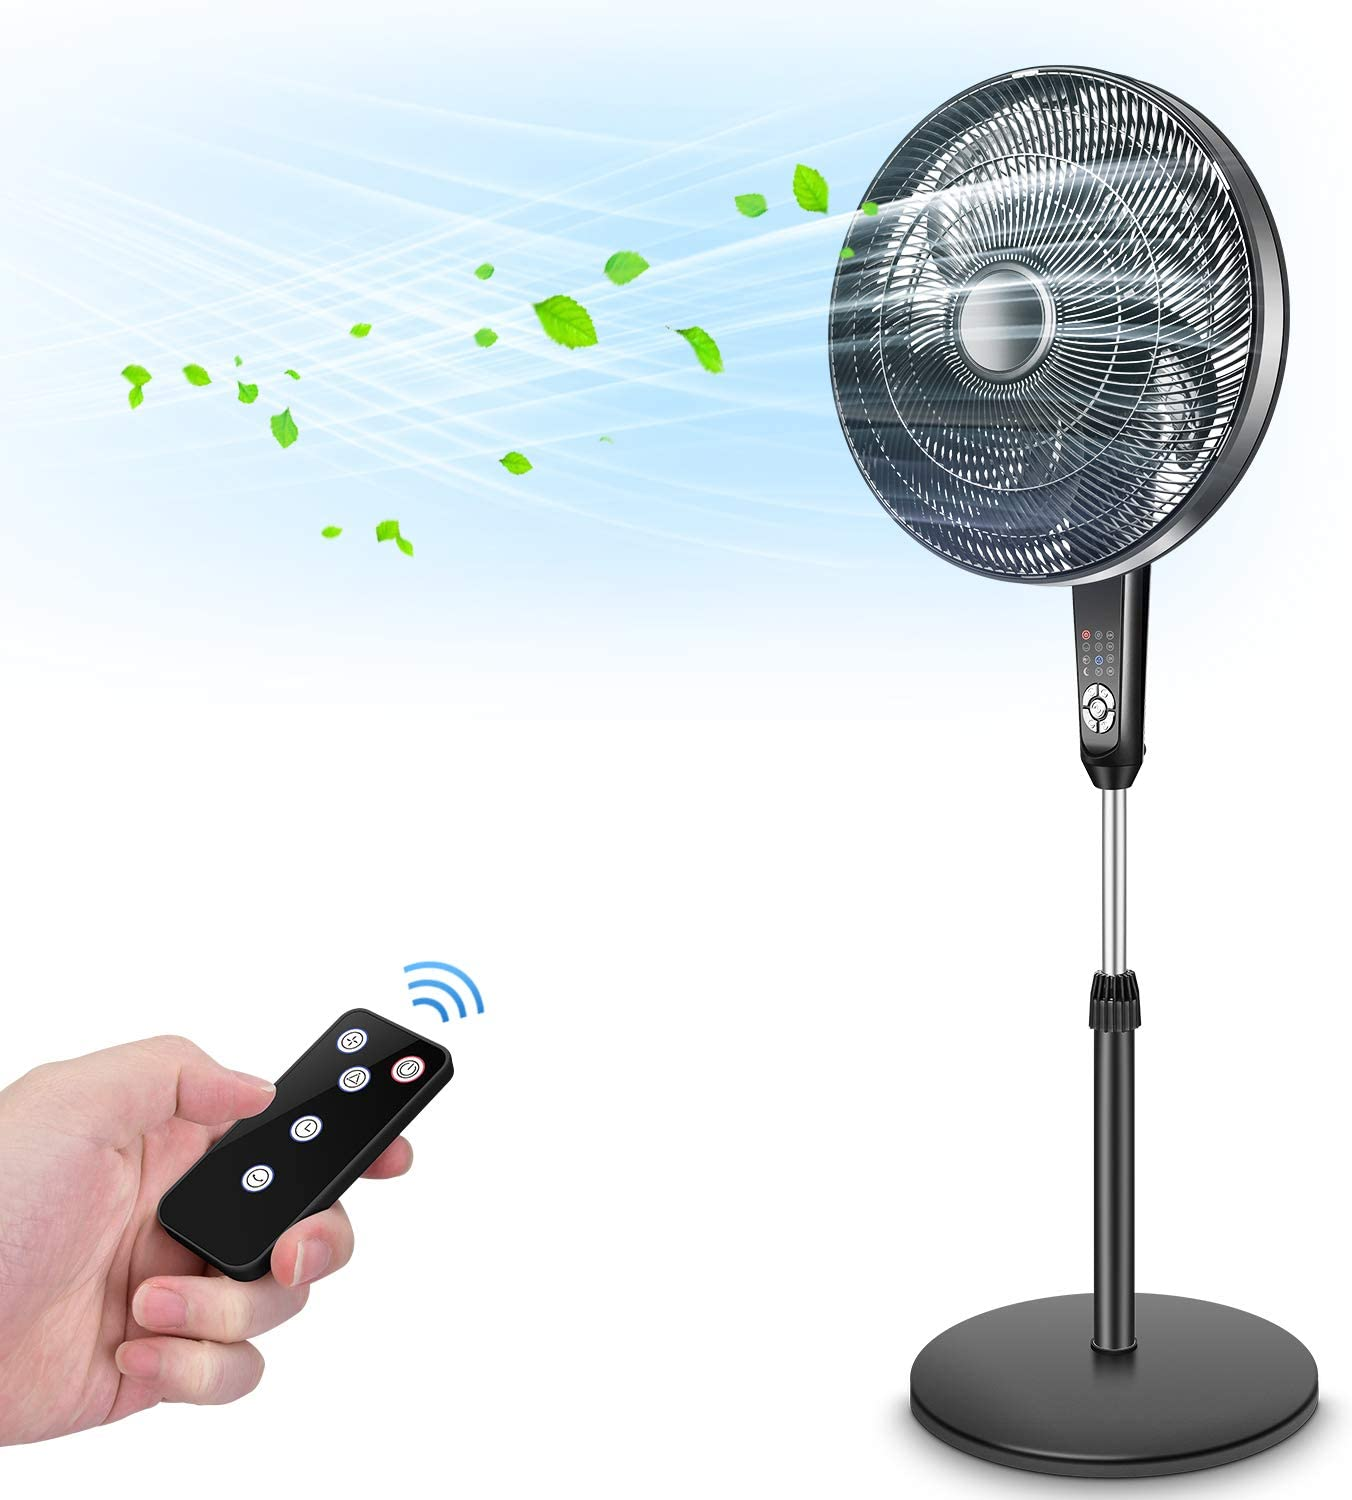 Pedestal Fan - Oscillating Fan with Timer Function, Powerful 4 Speed, 3 Modes, Remote Control, Large Standing Fan, Adjustable Height & Tilt, 2 in 1 Oscillating Pedestal Fan for Living Room, Bedroom,Outdoor Patio